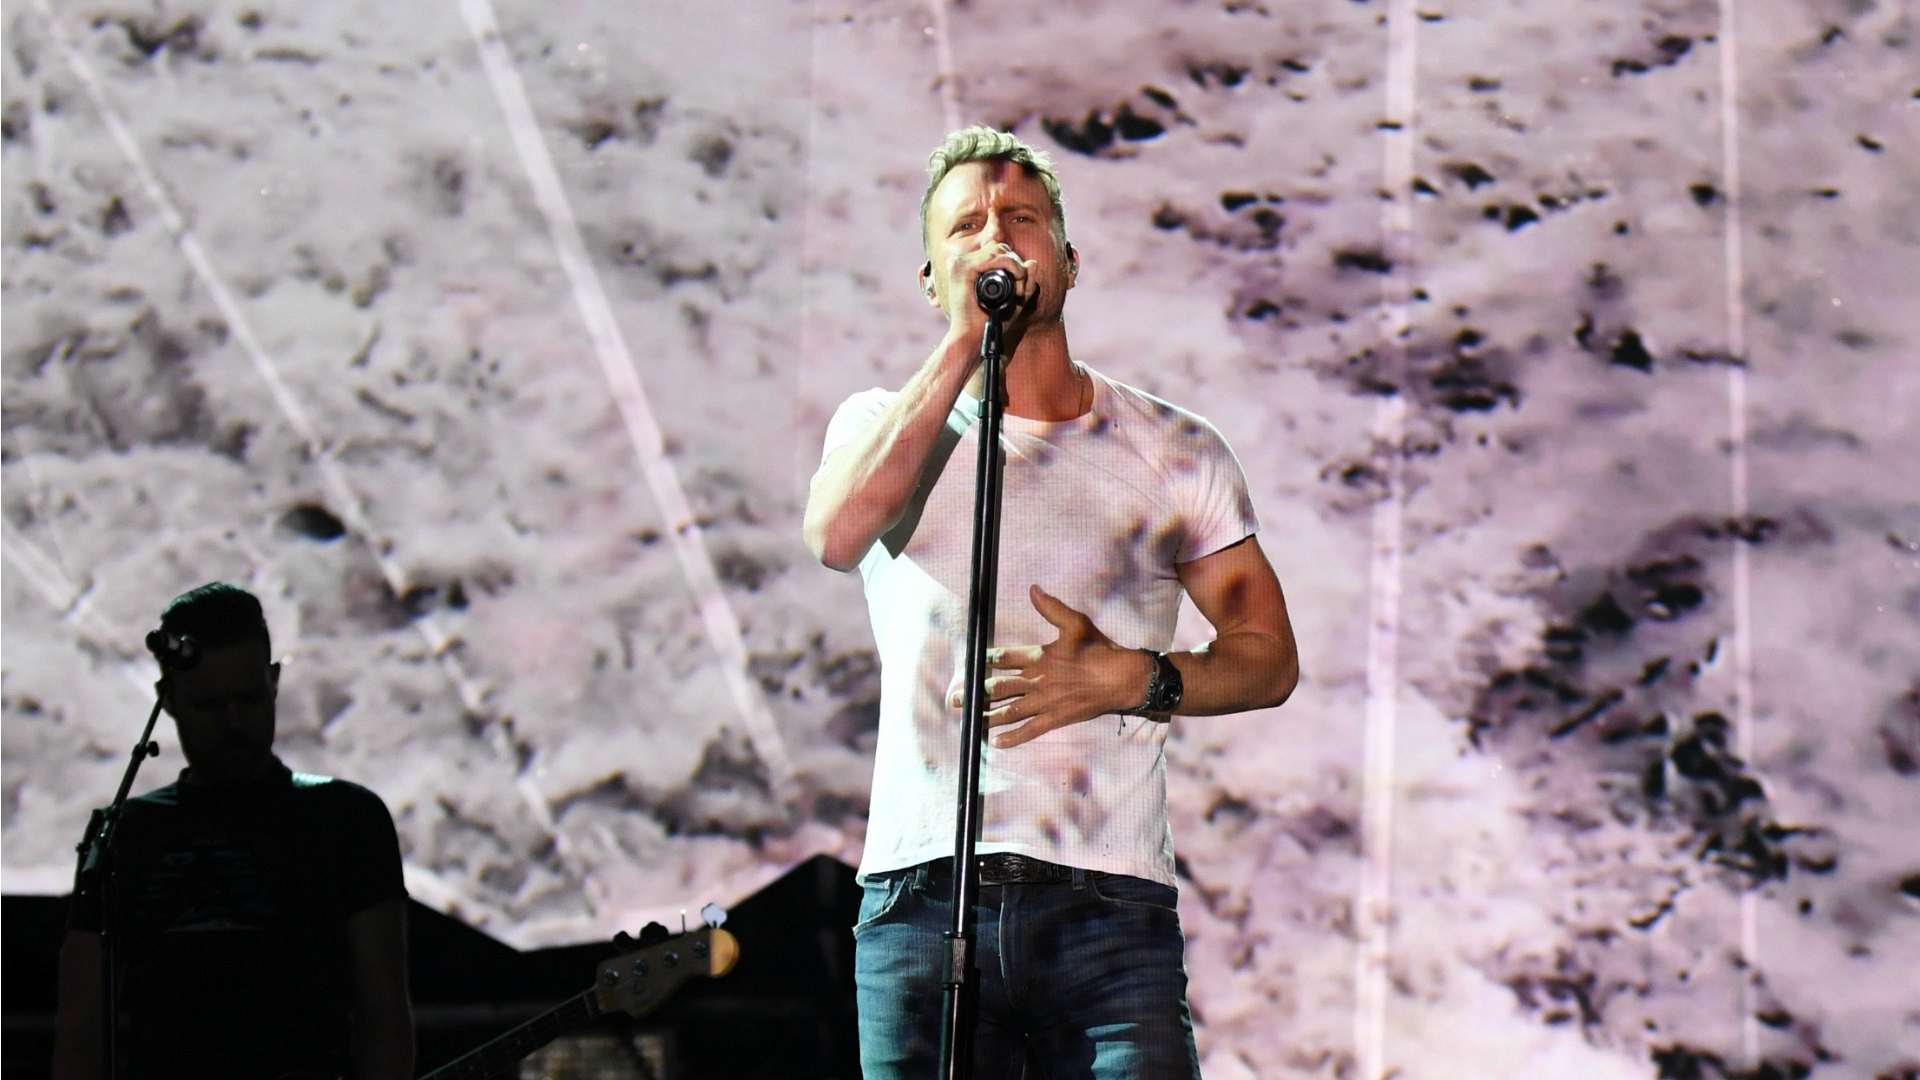 Dierks takes a practice run at his upcoming performance at the 52nd ACM Awards.